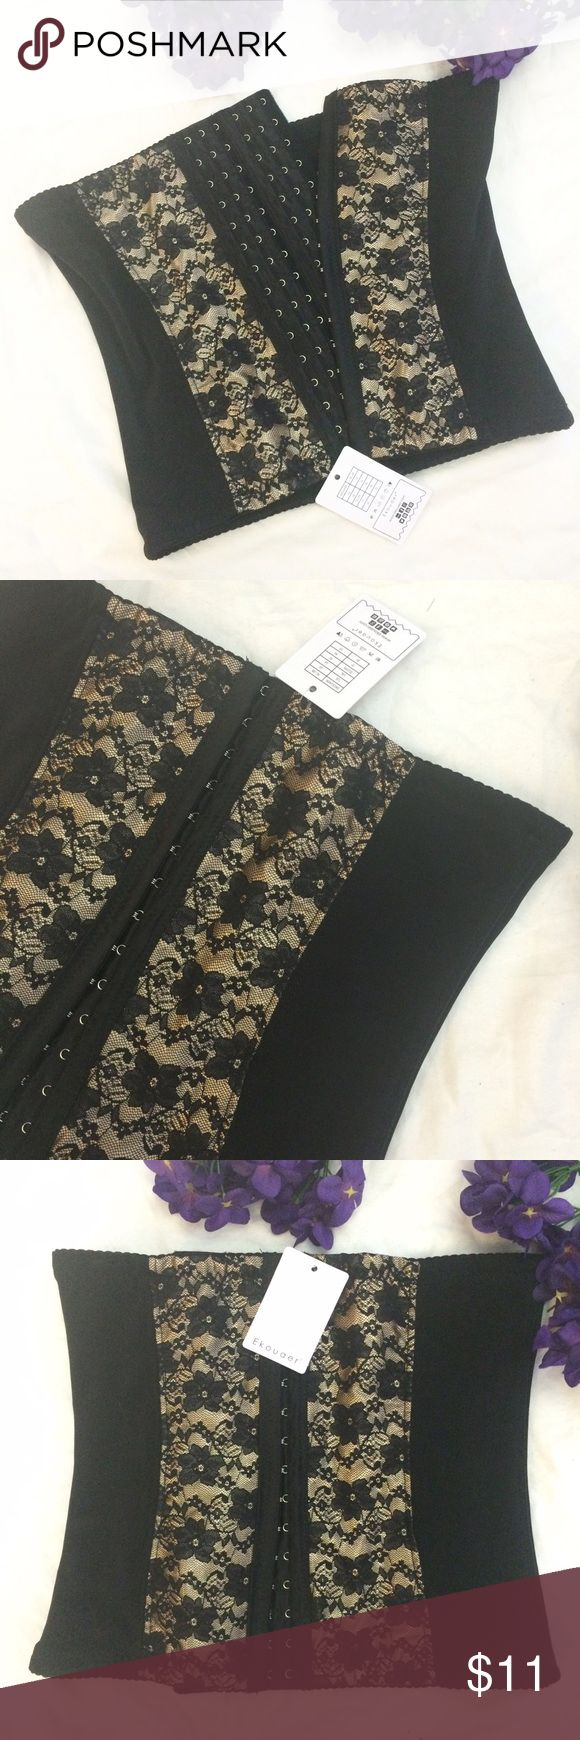 "NWT Ekouaer Lace Waist Trainer Corset This black waist training corset from Ekouaer is NWT and has a gold lacey detail. 5 soft steel bones prevents it from rolling up or down. Firm compression. Sizing: US 10/XL on the tag. Fits a 31""-33"" waistline. 12.5"" wide and 11"" long when laying flat. Bin A. Ekouaer Intimates & Sleepwear Shapewear"